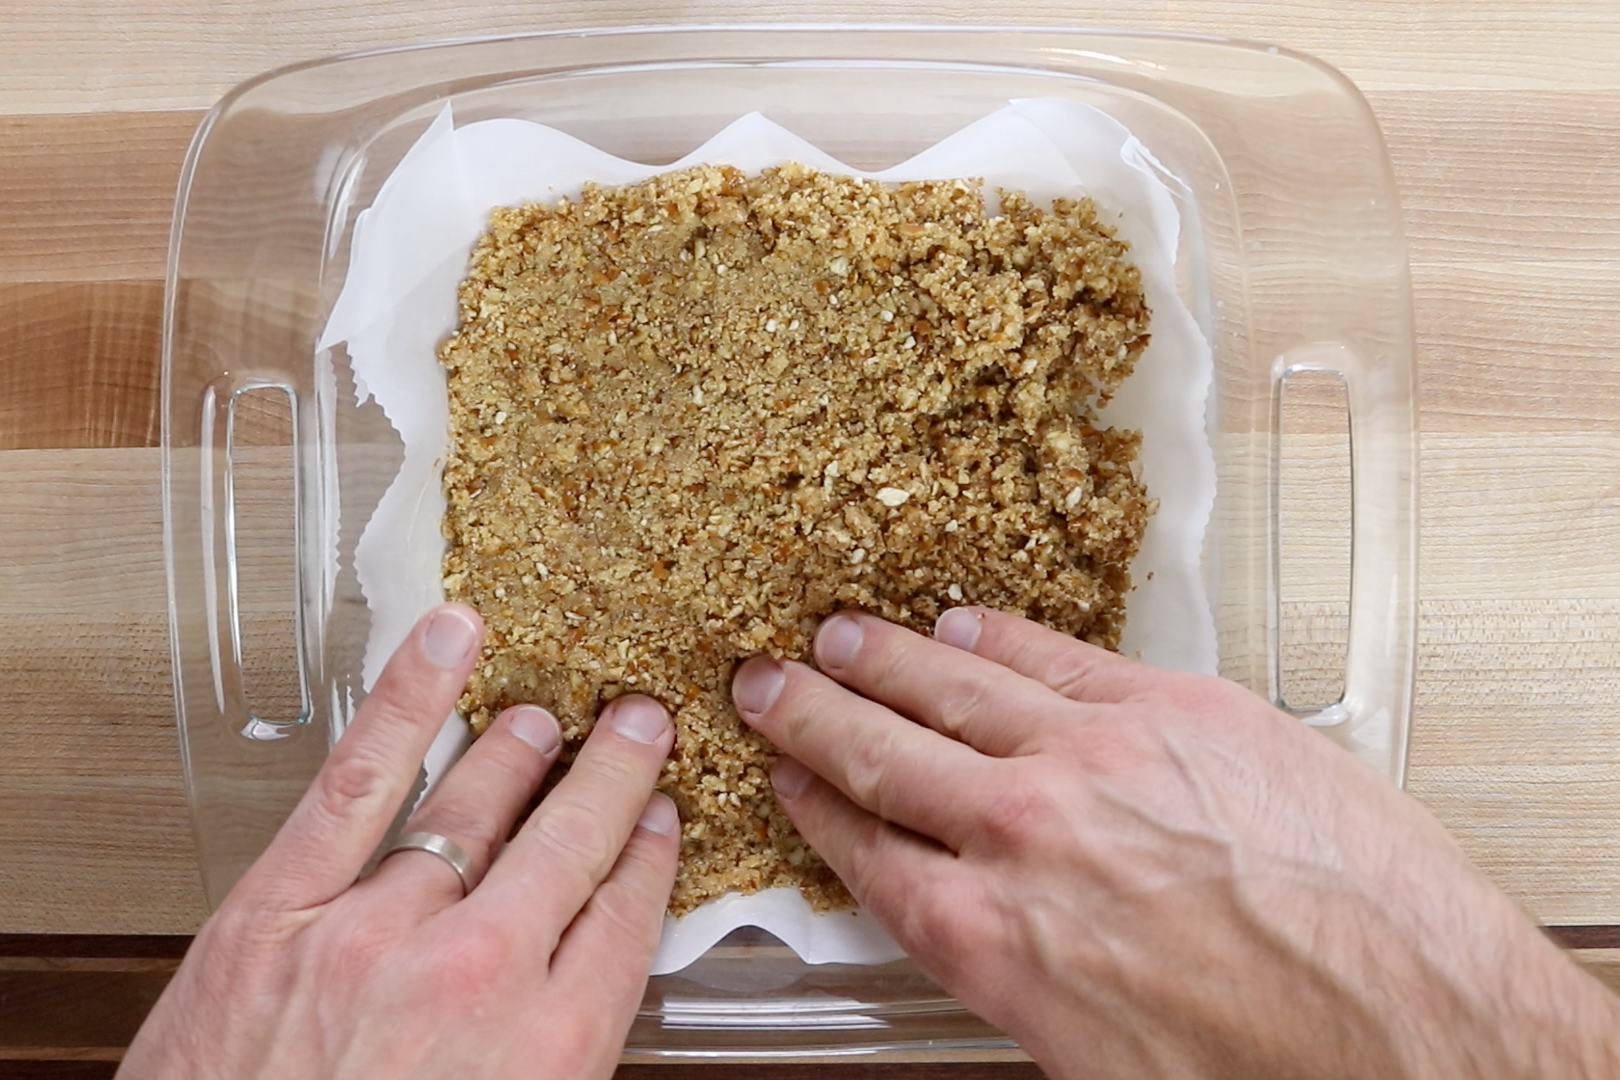 5. Put the mixture in the prepared baking dish and gently press down with your fingers. -